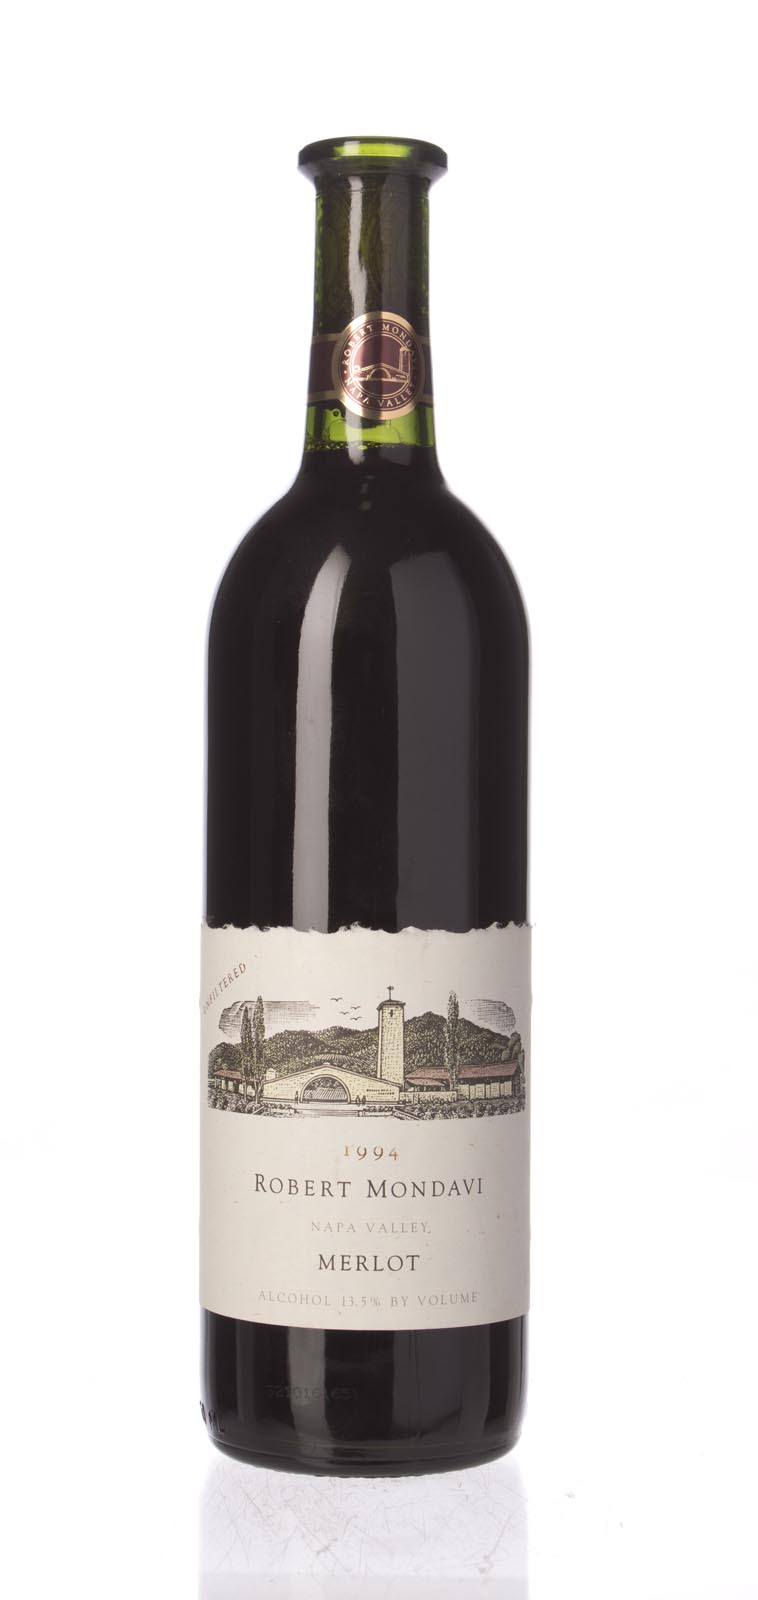 Robert Mondavi Merlot Napa Valley 1994, 750mL () from The BPW - Merchants of rare and fine wines.